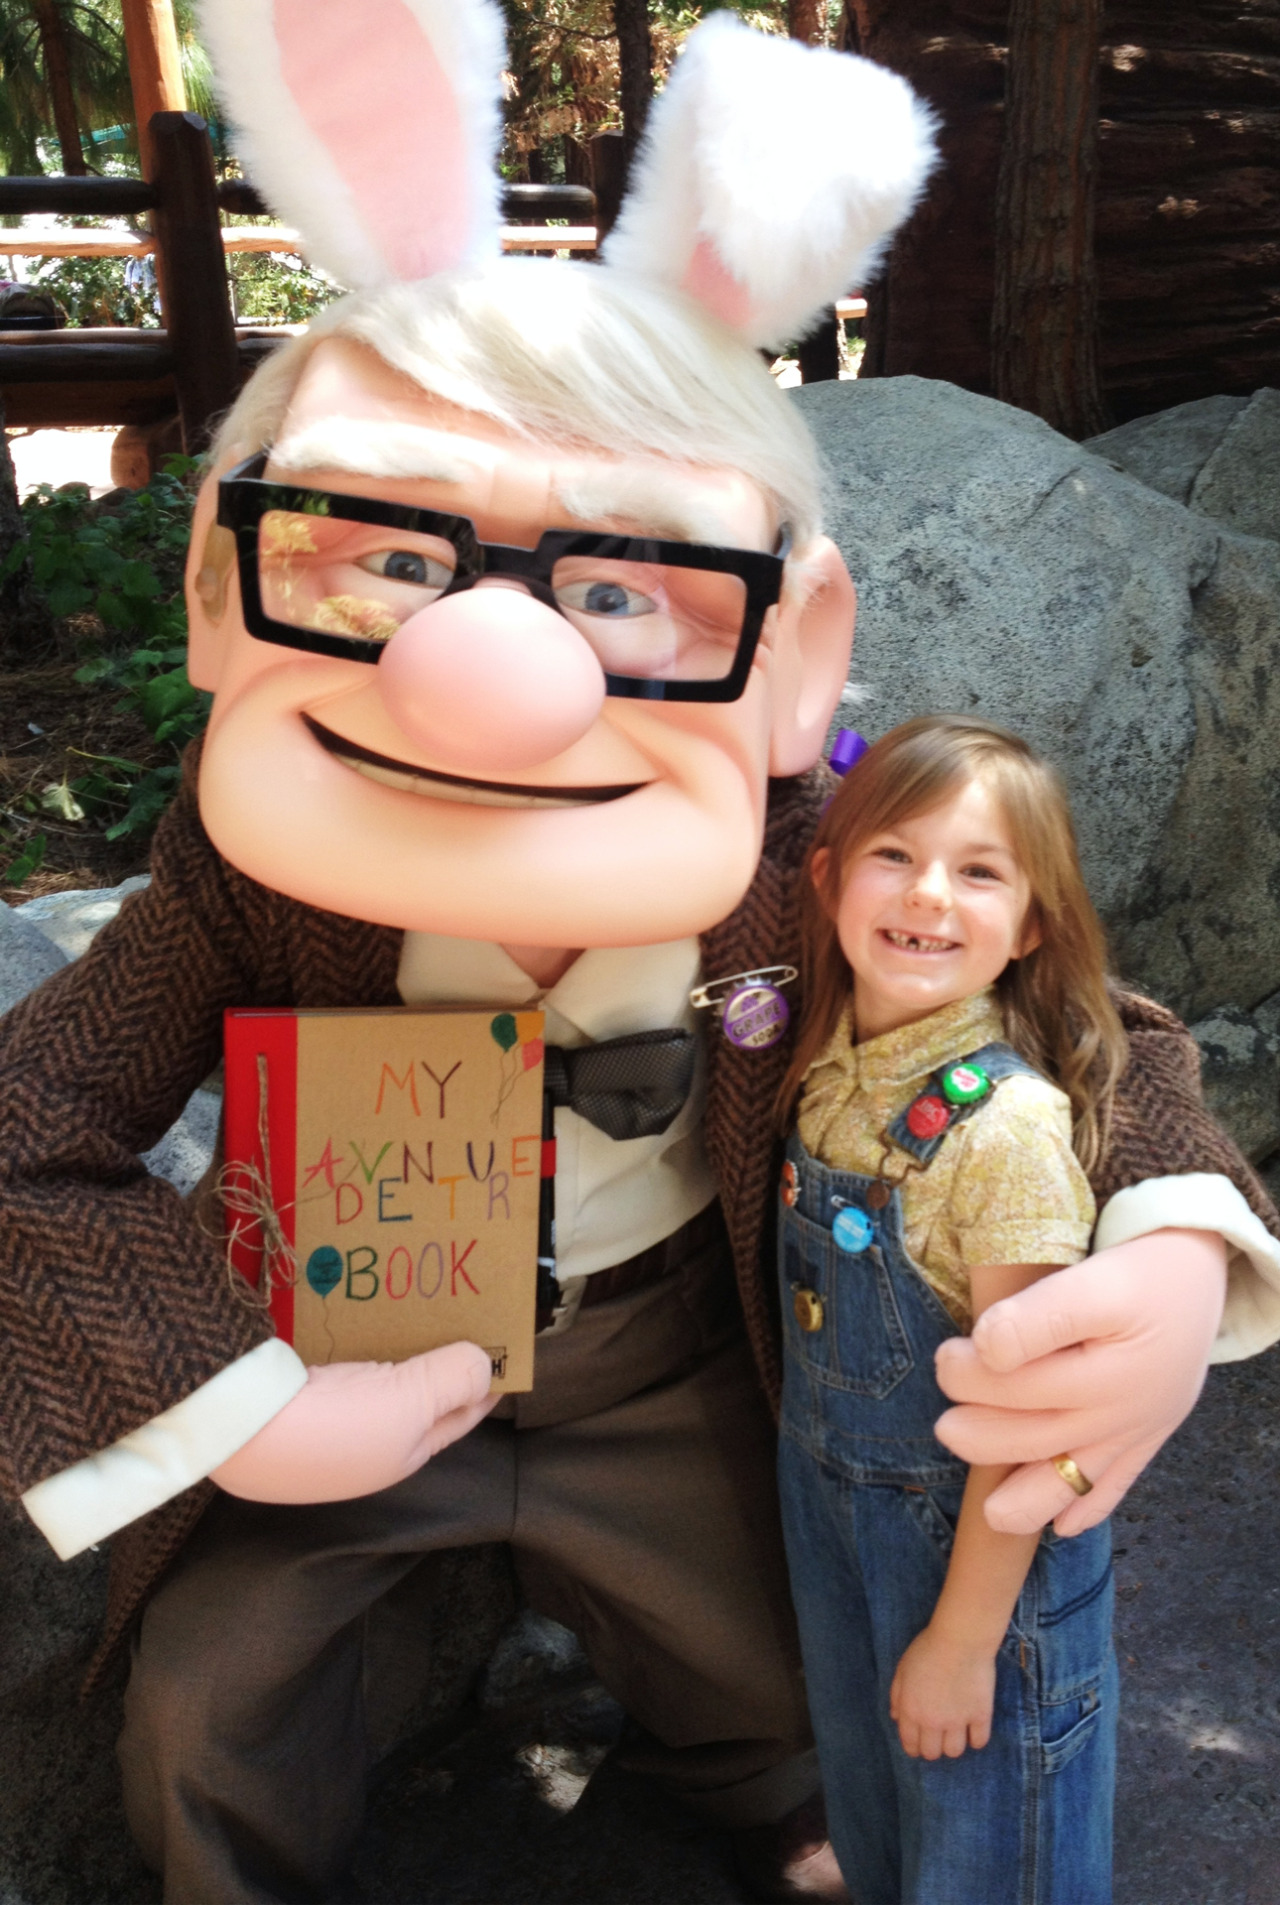 peggycress:  Carl Fredricksen and young Ellie after browsing through their adventure book.